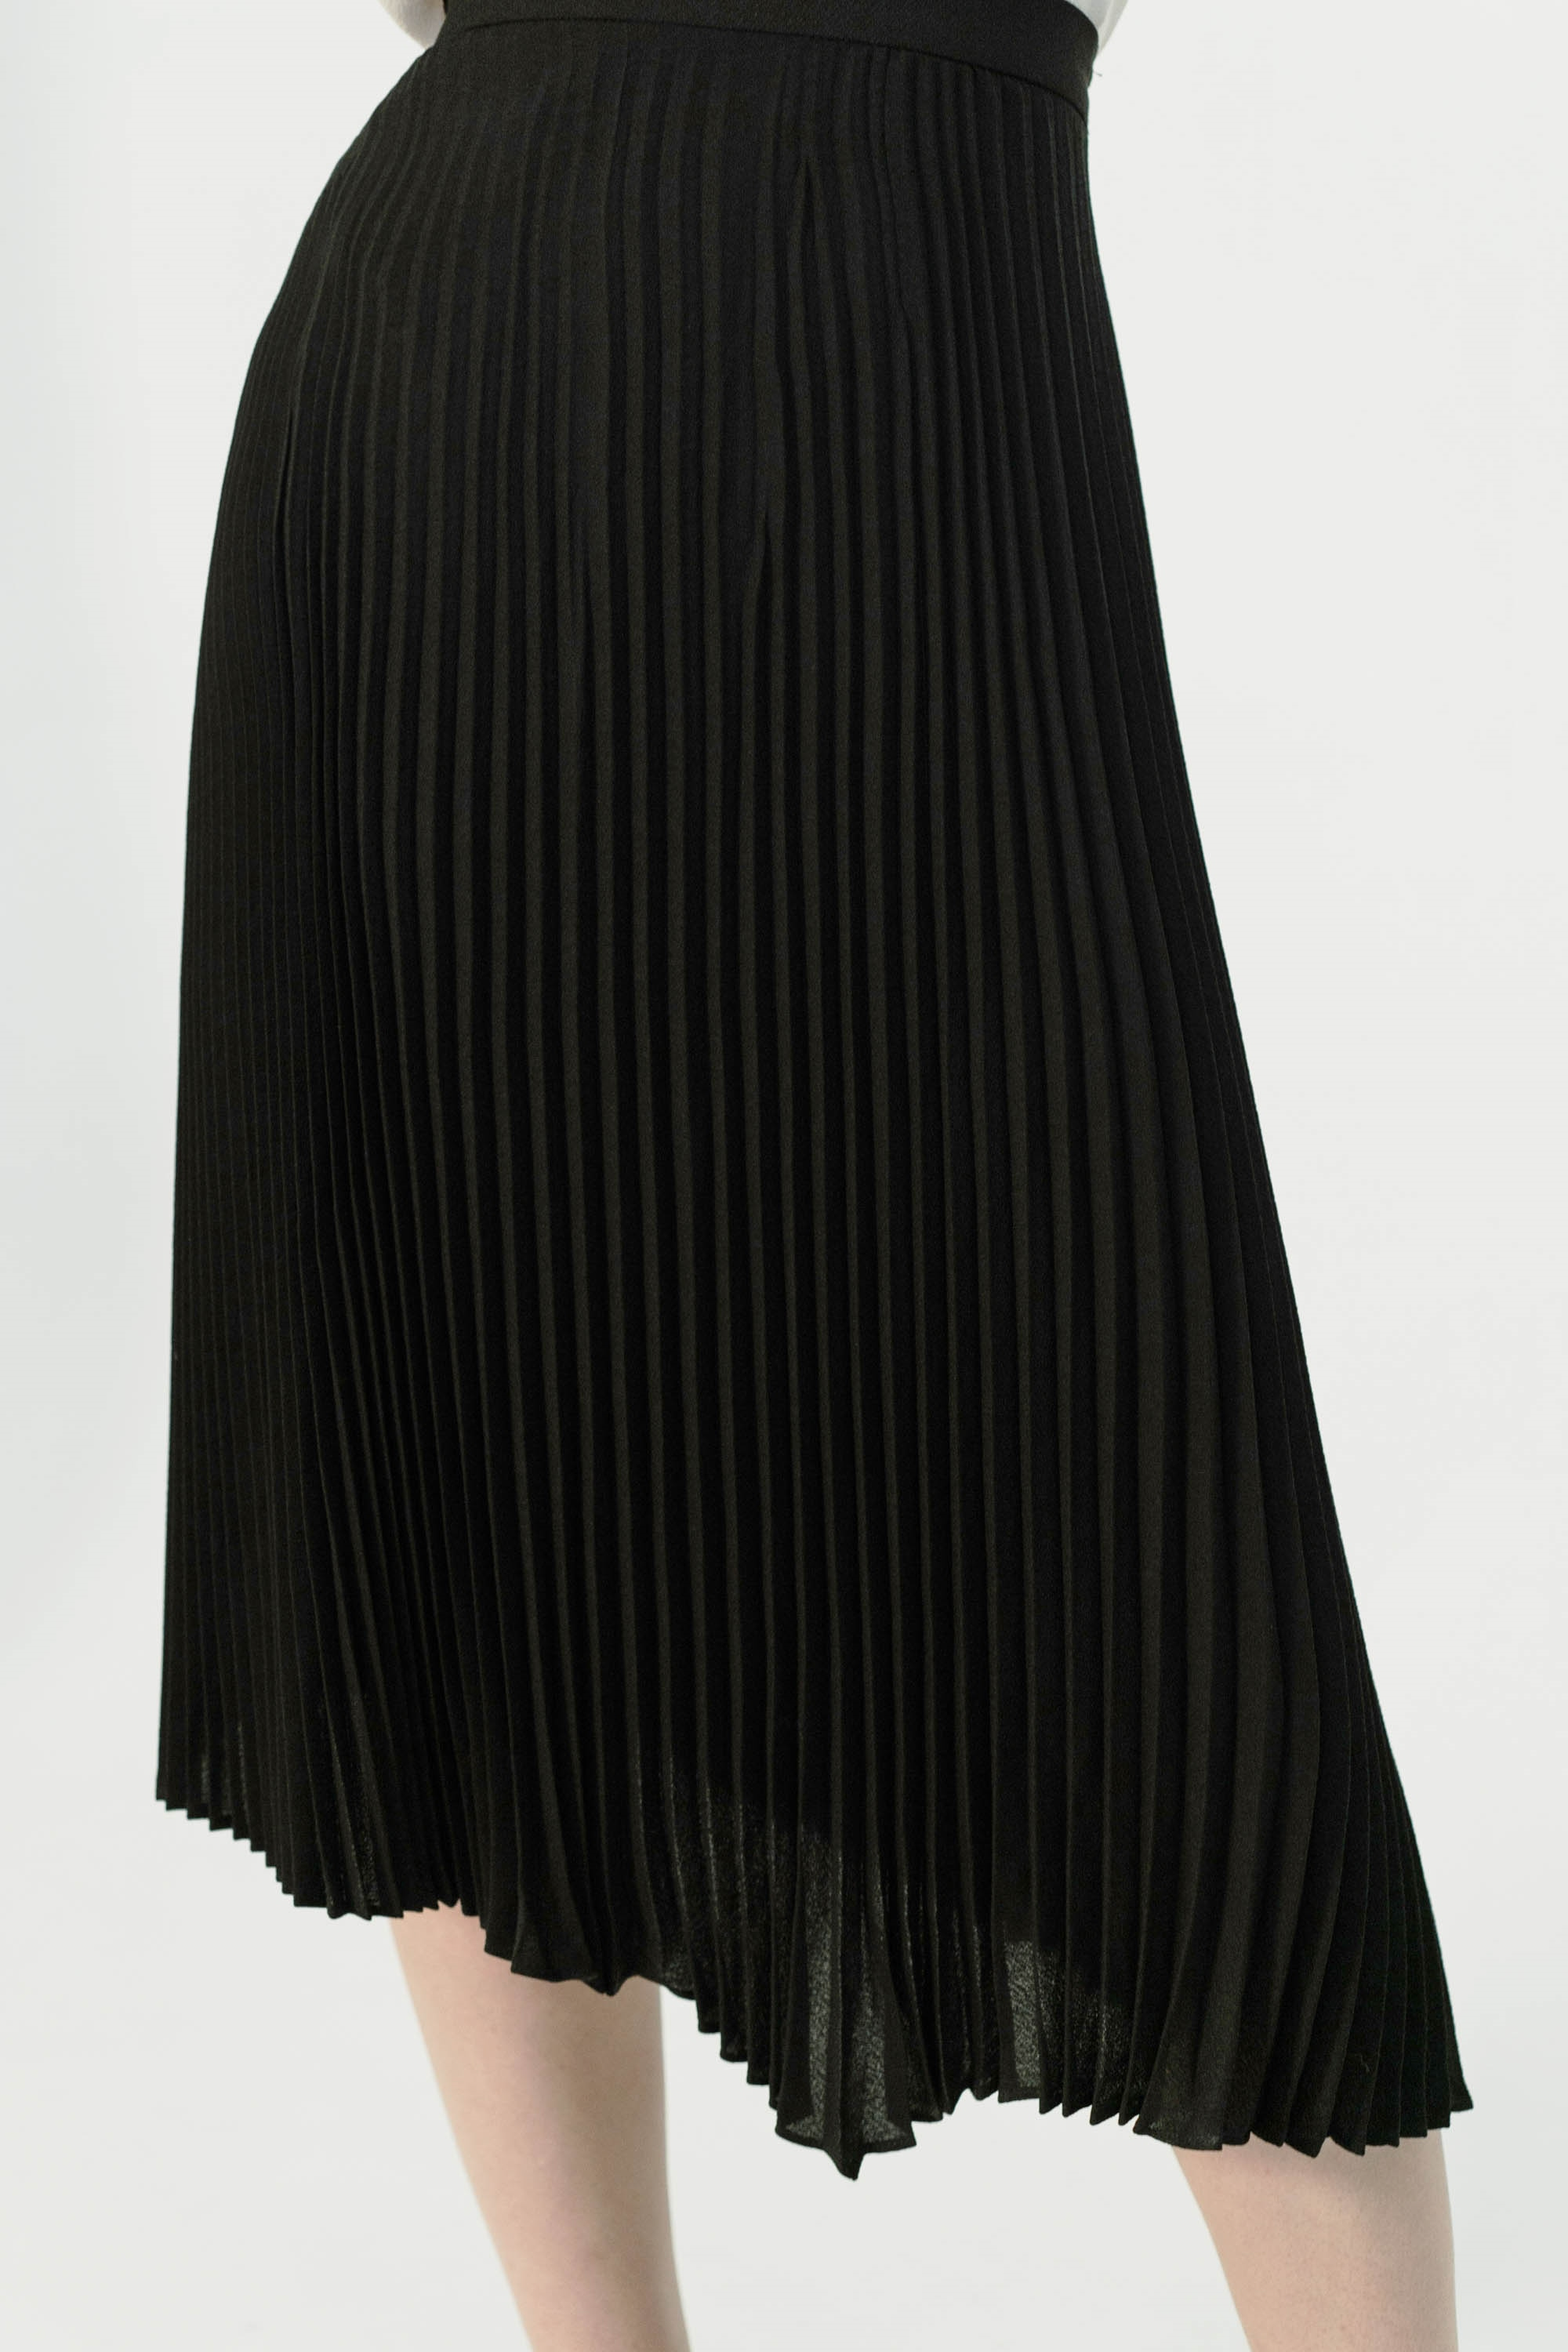 Picture of Coco Skirt in Black